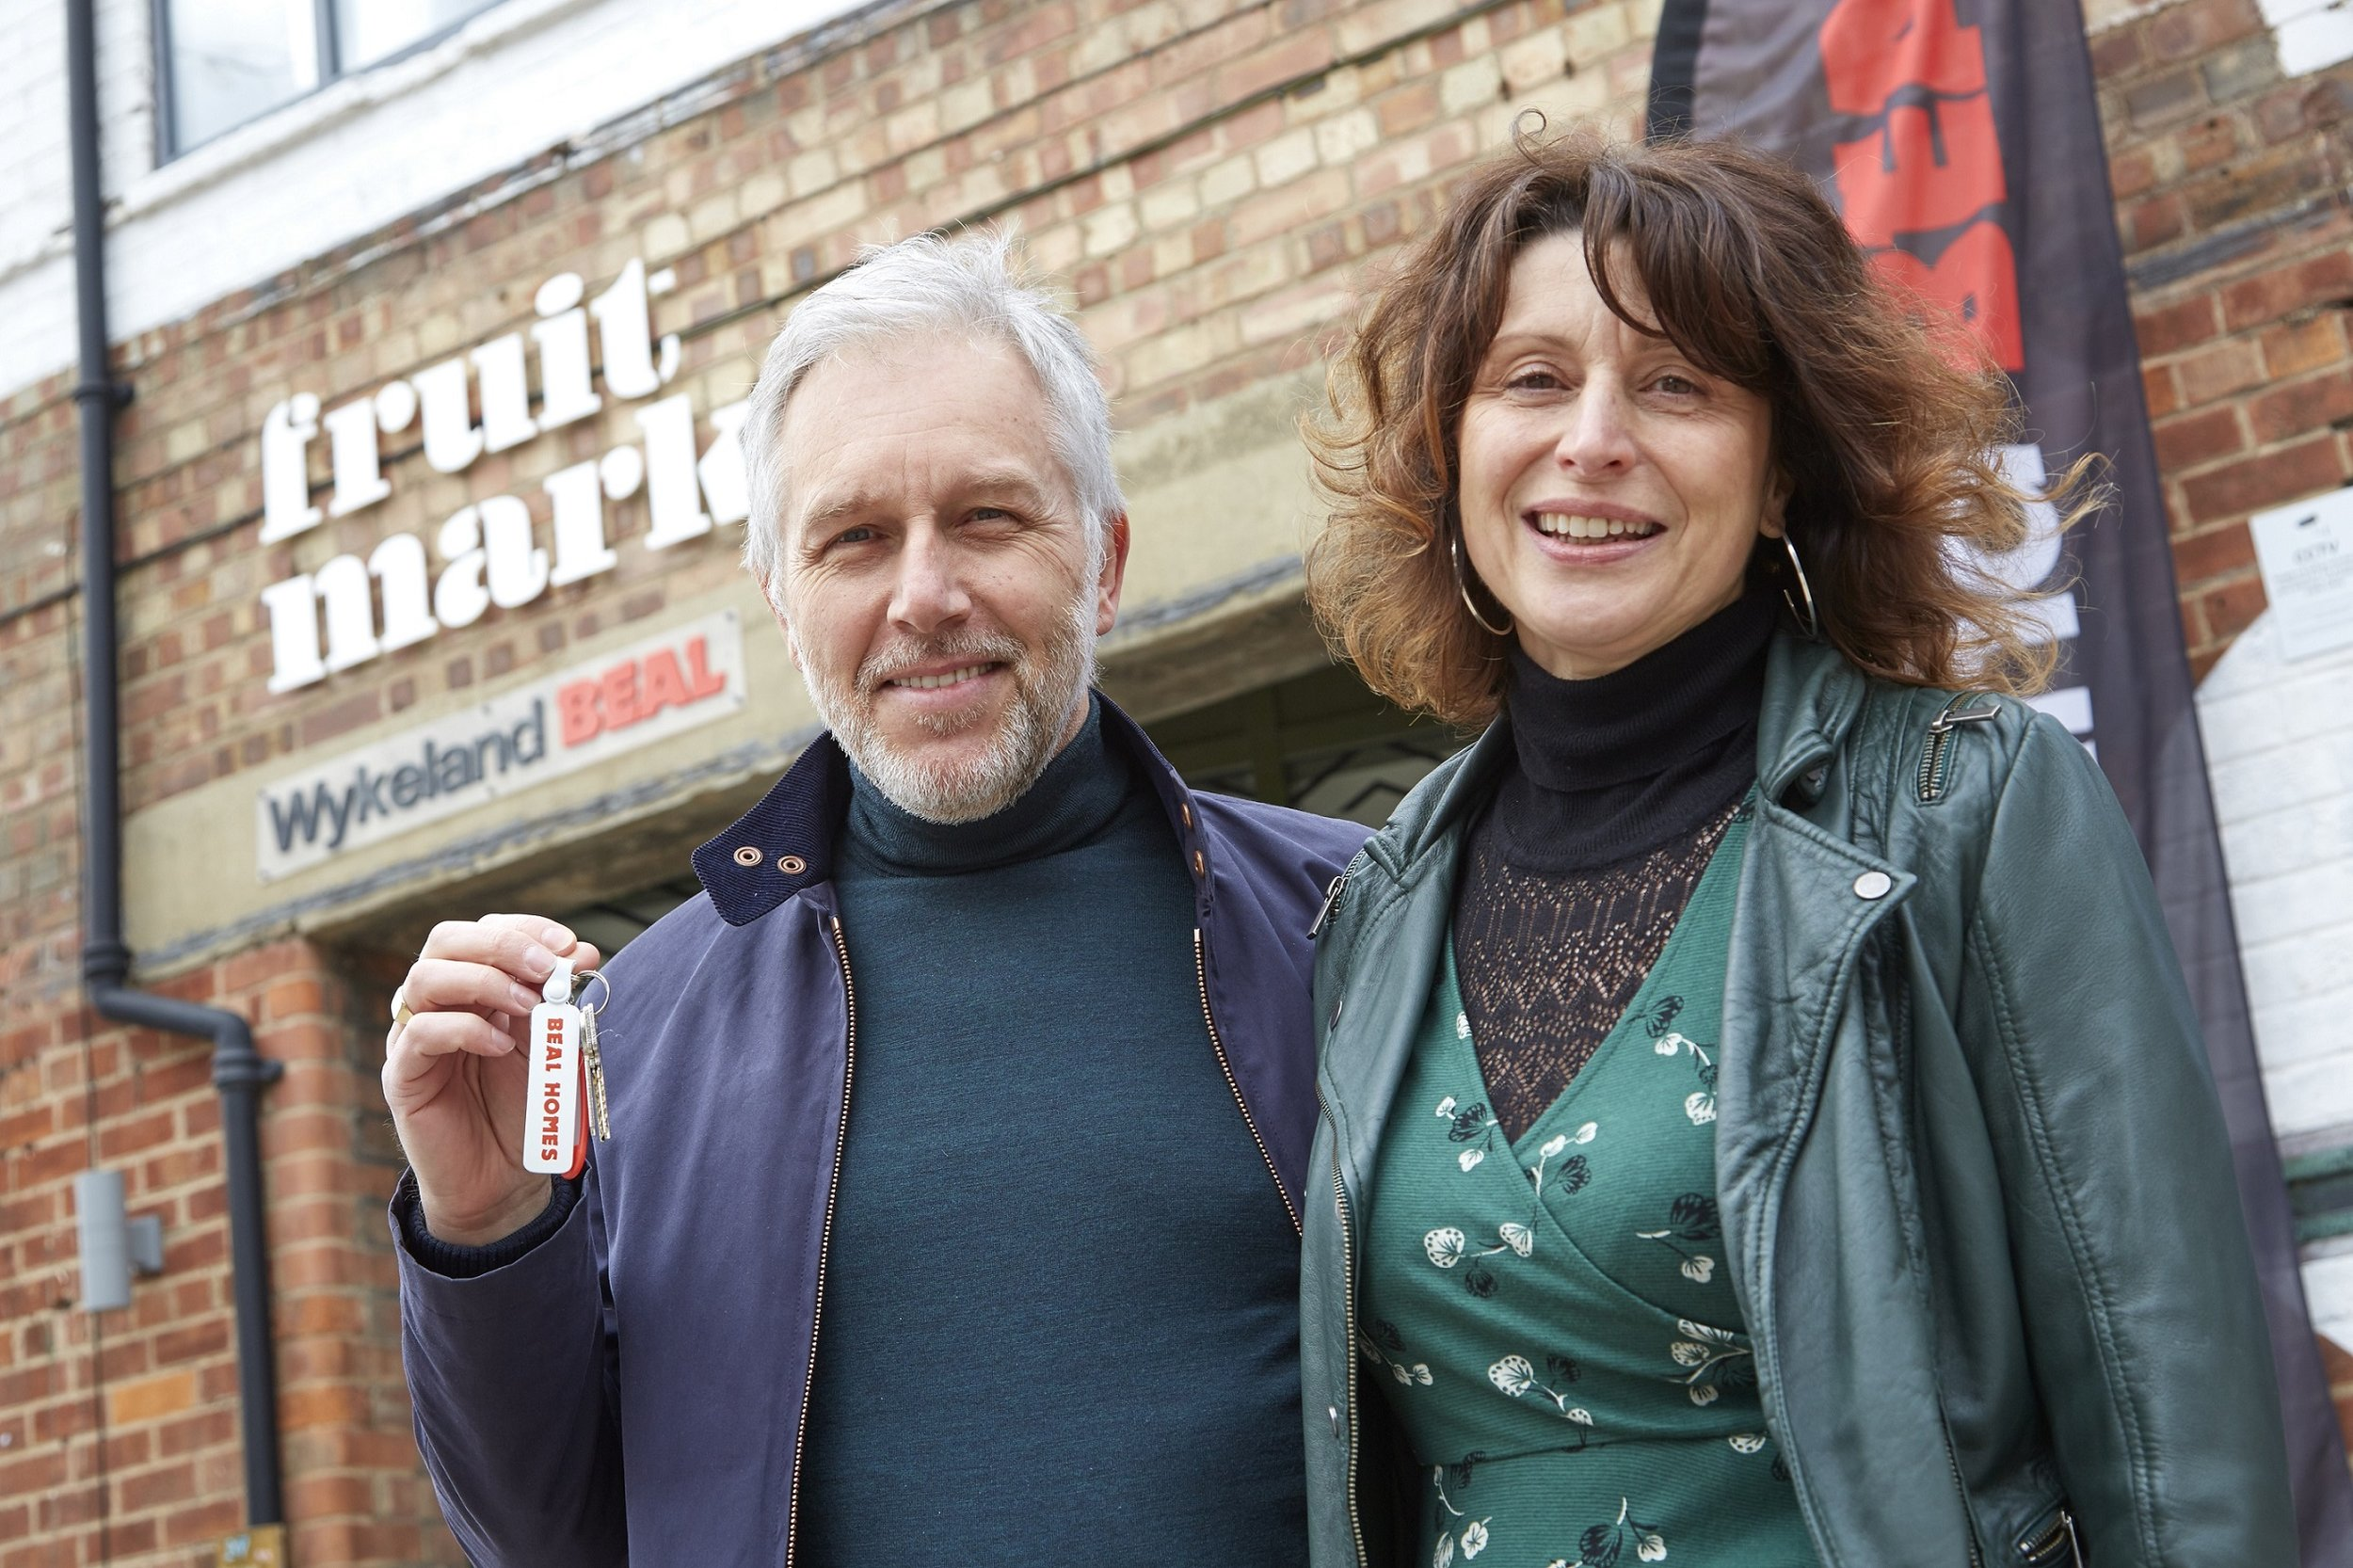 The first residents of the new Fruit Market community, Steve Copeman and Claire Bell, moved into their new property in March.